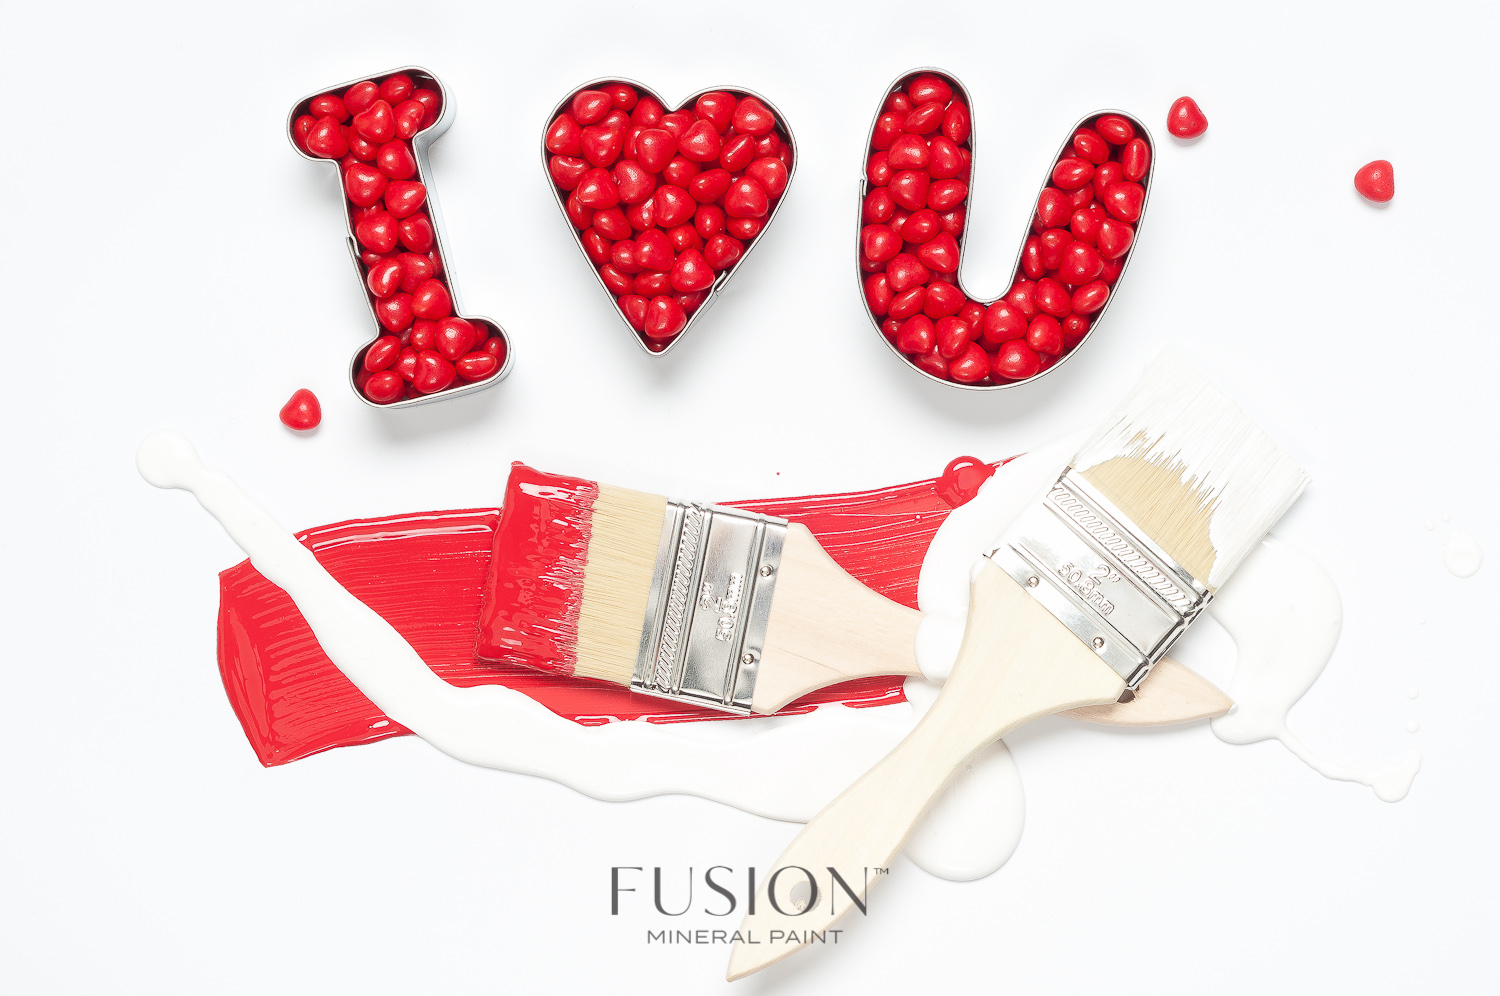 Fusion Mineral Paint in Fort York Red and Picket Fence are the perfect colours for Valentine's Day!